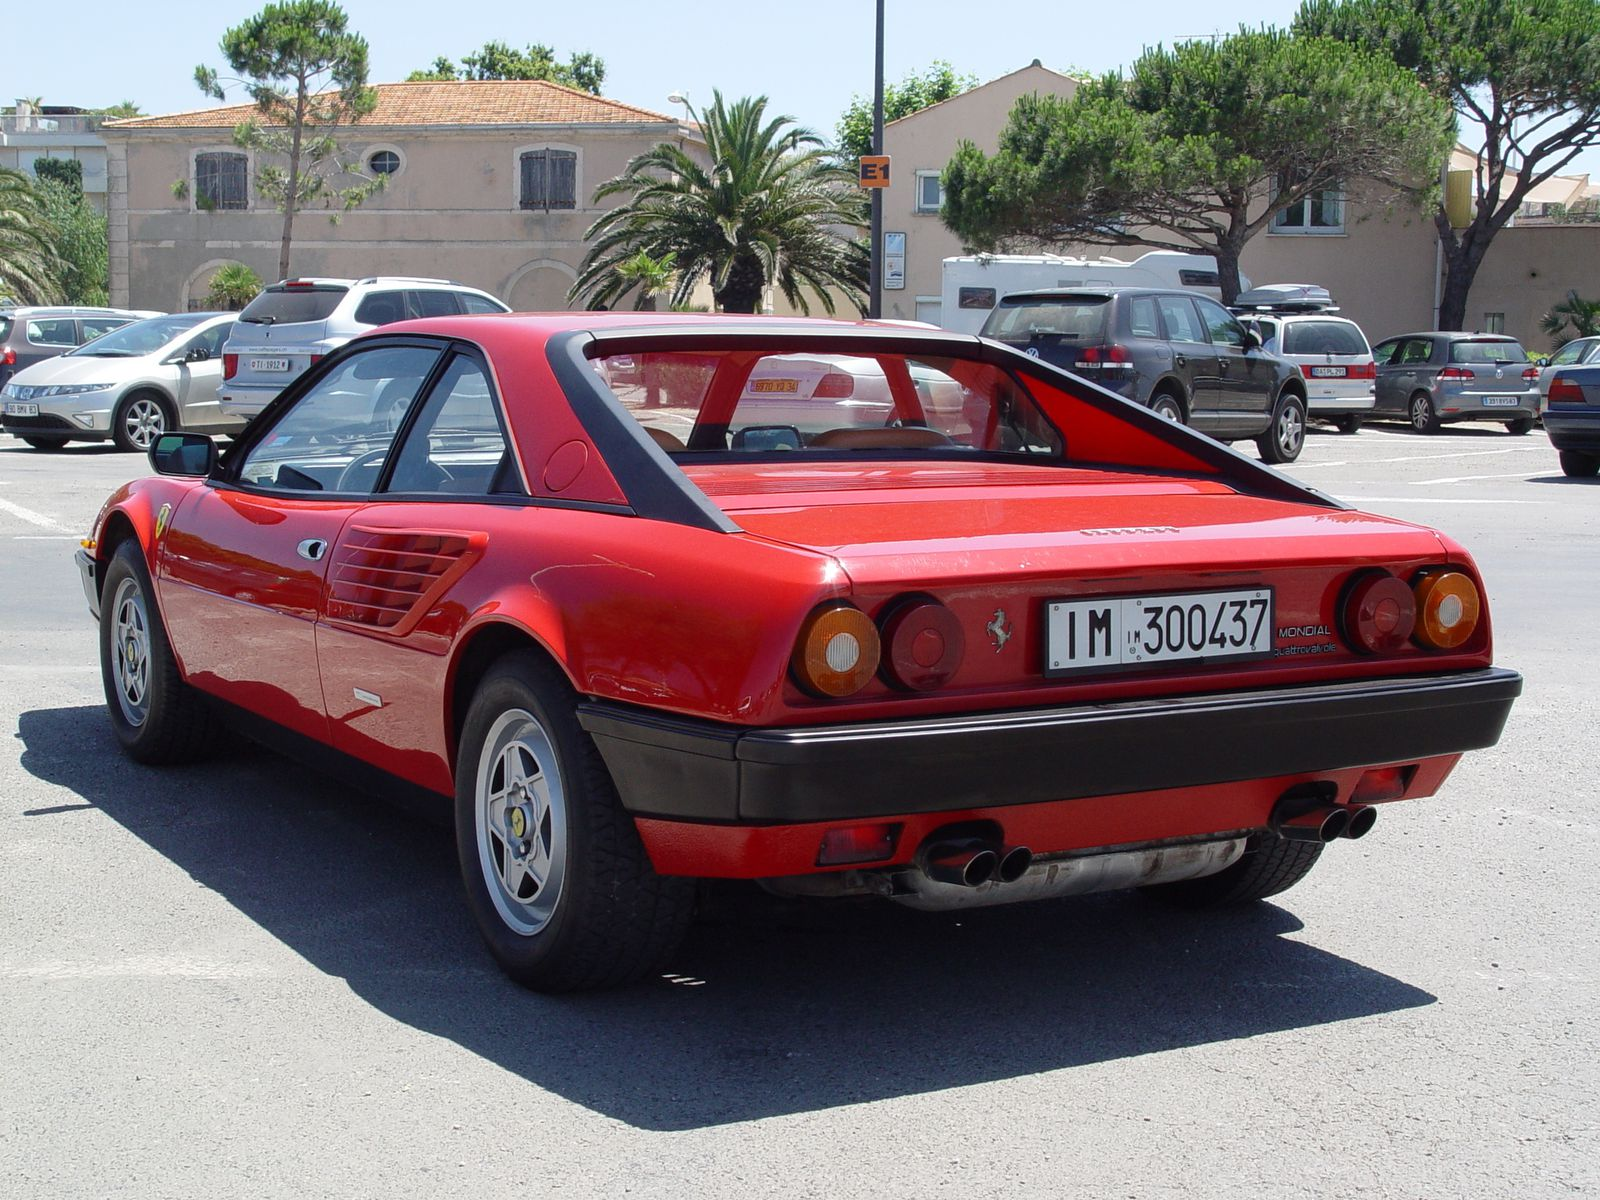 Luxury car Ferrari Mondial, Picture of Ferrari Mondial in red color, sports model ferrari